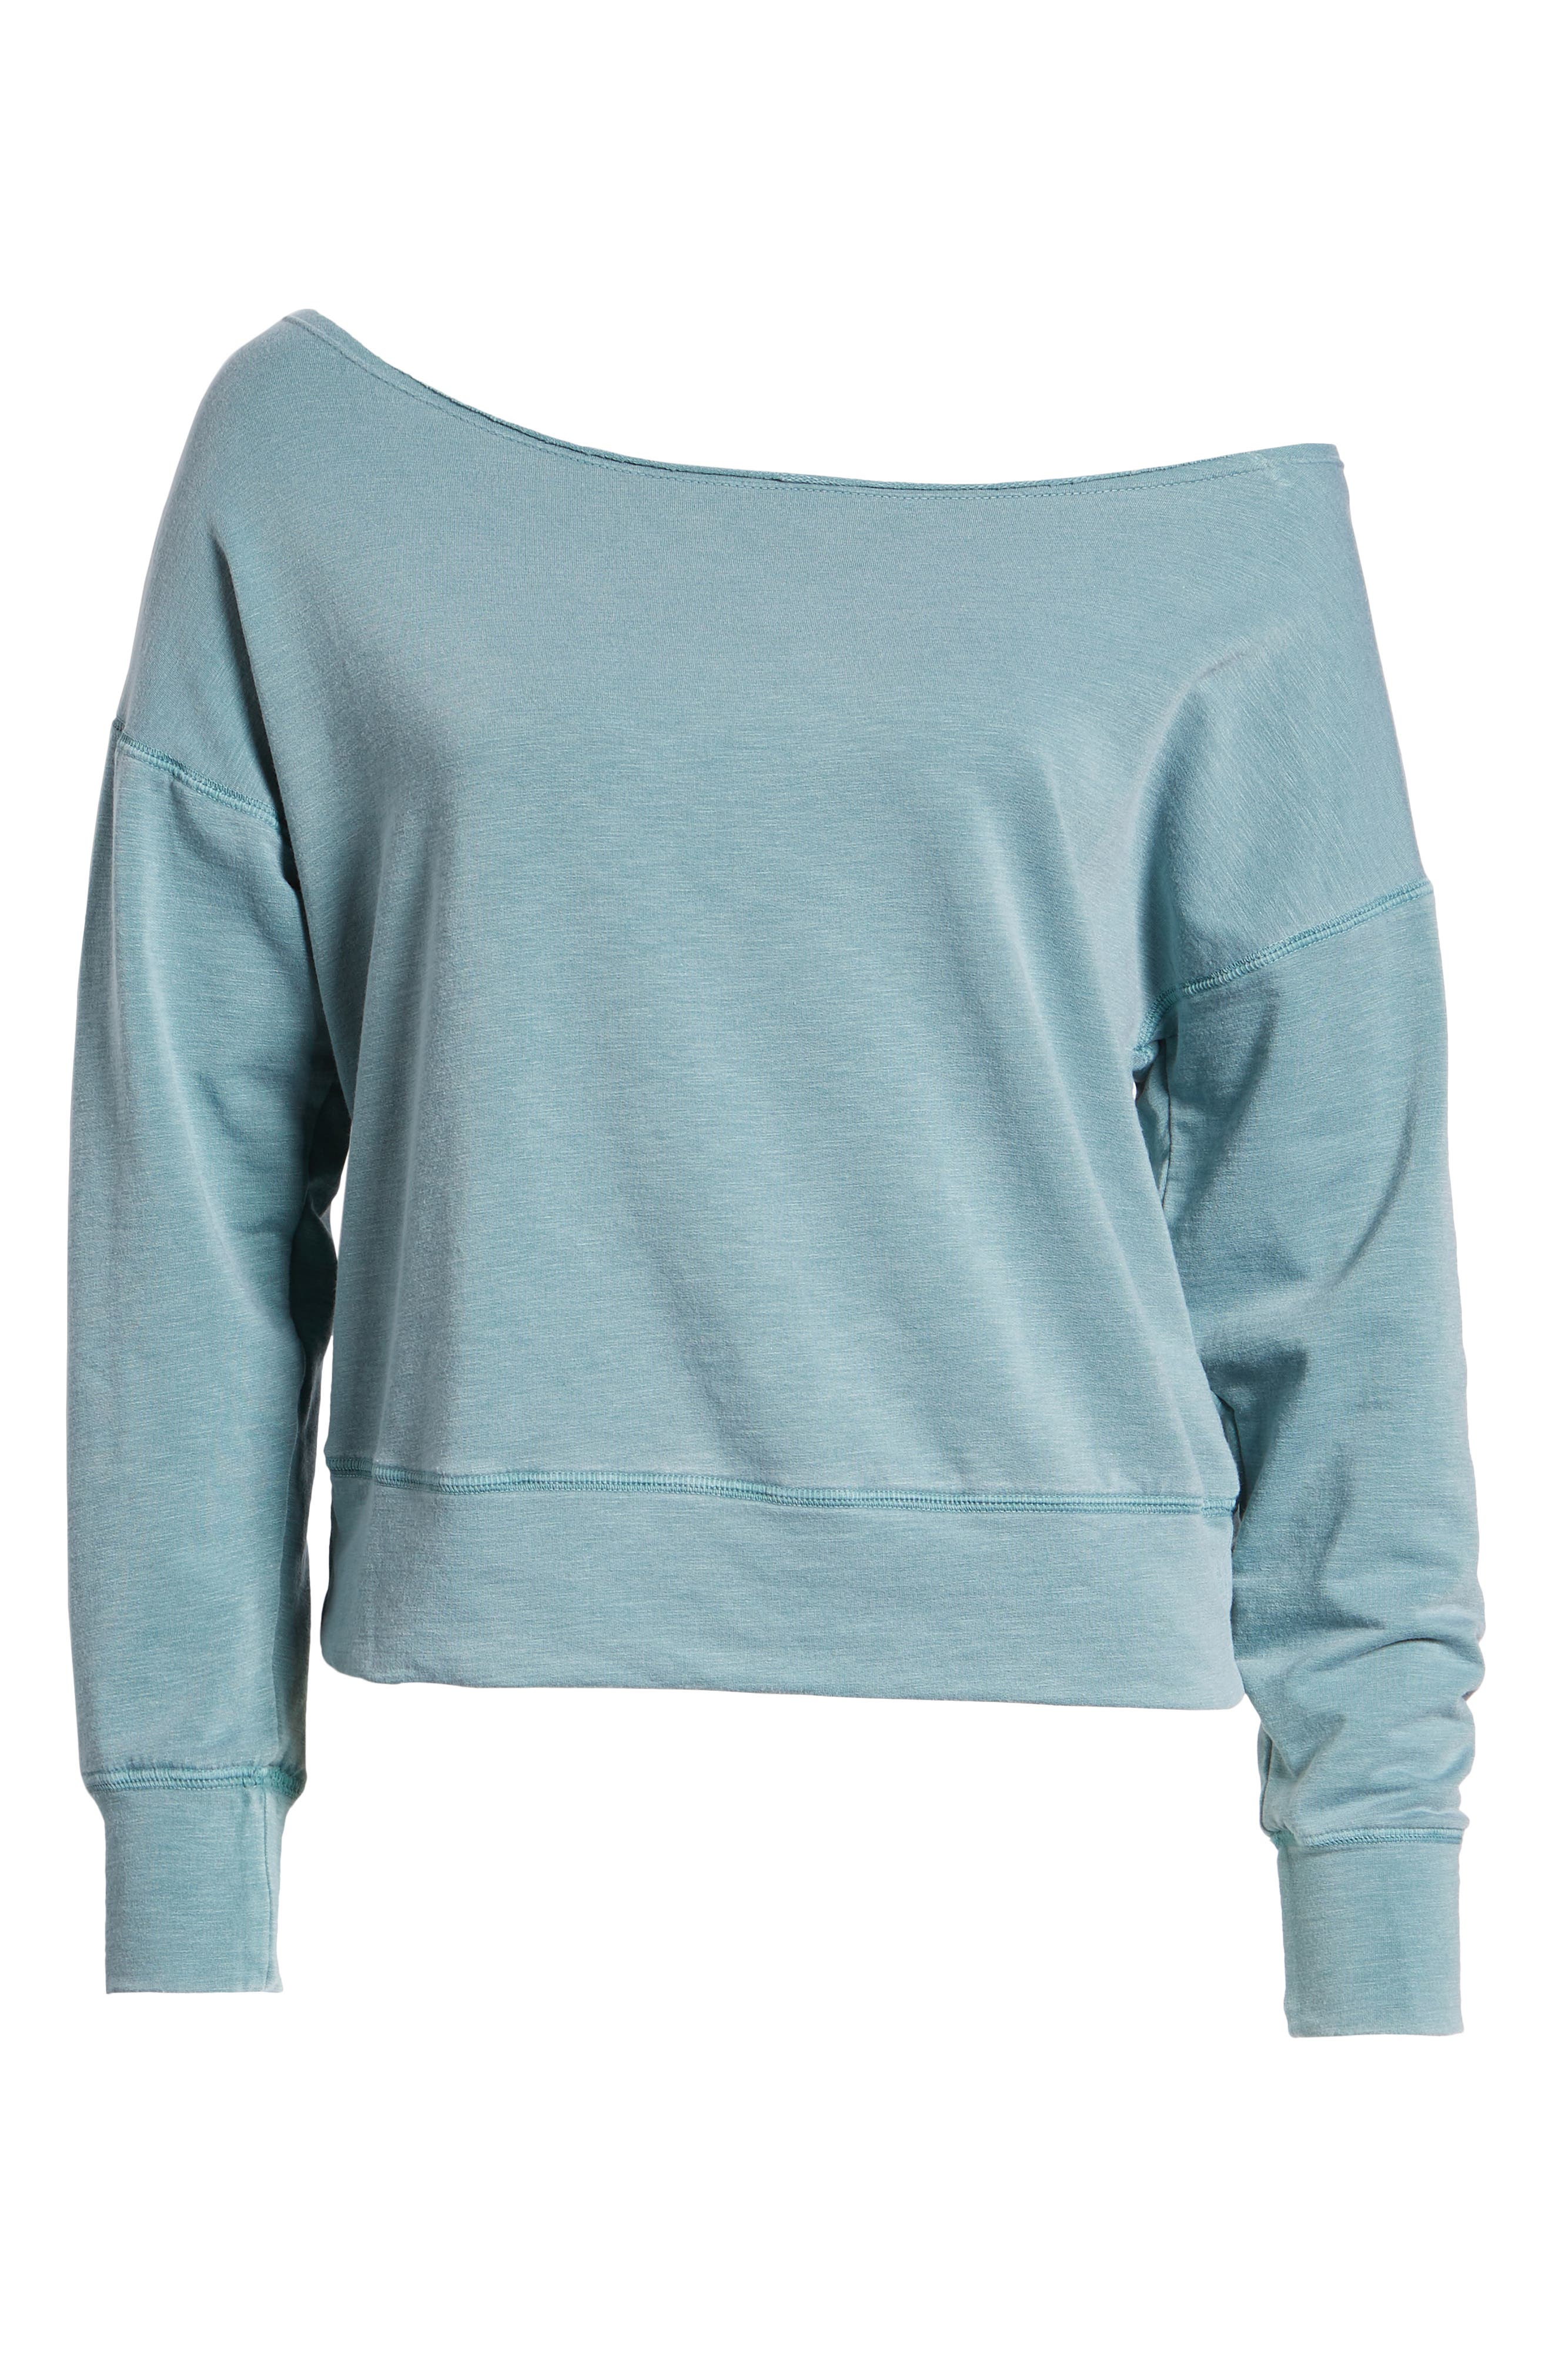 Off the Shoulder Sweatshirt,                             Alternate thumbnail 7, color,                             Pigment Basil